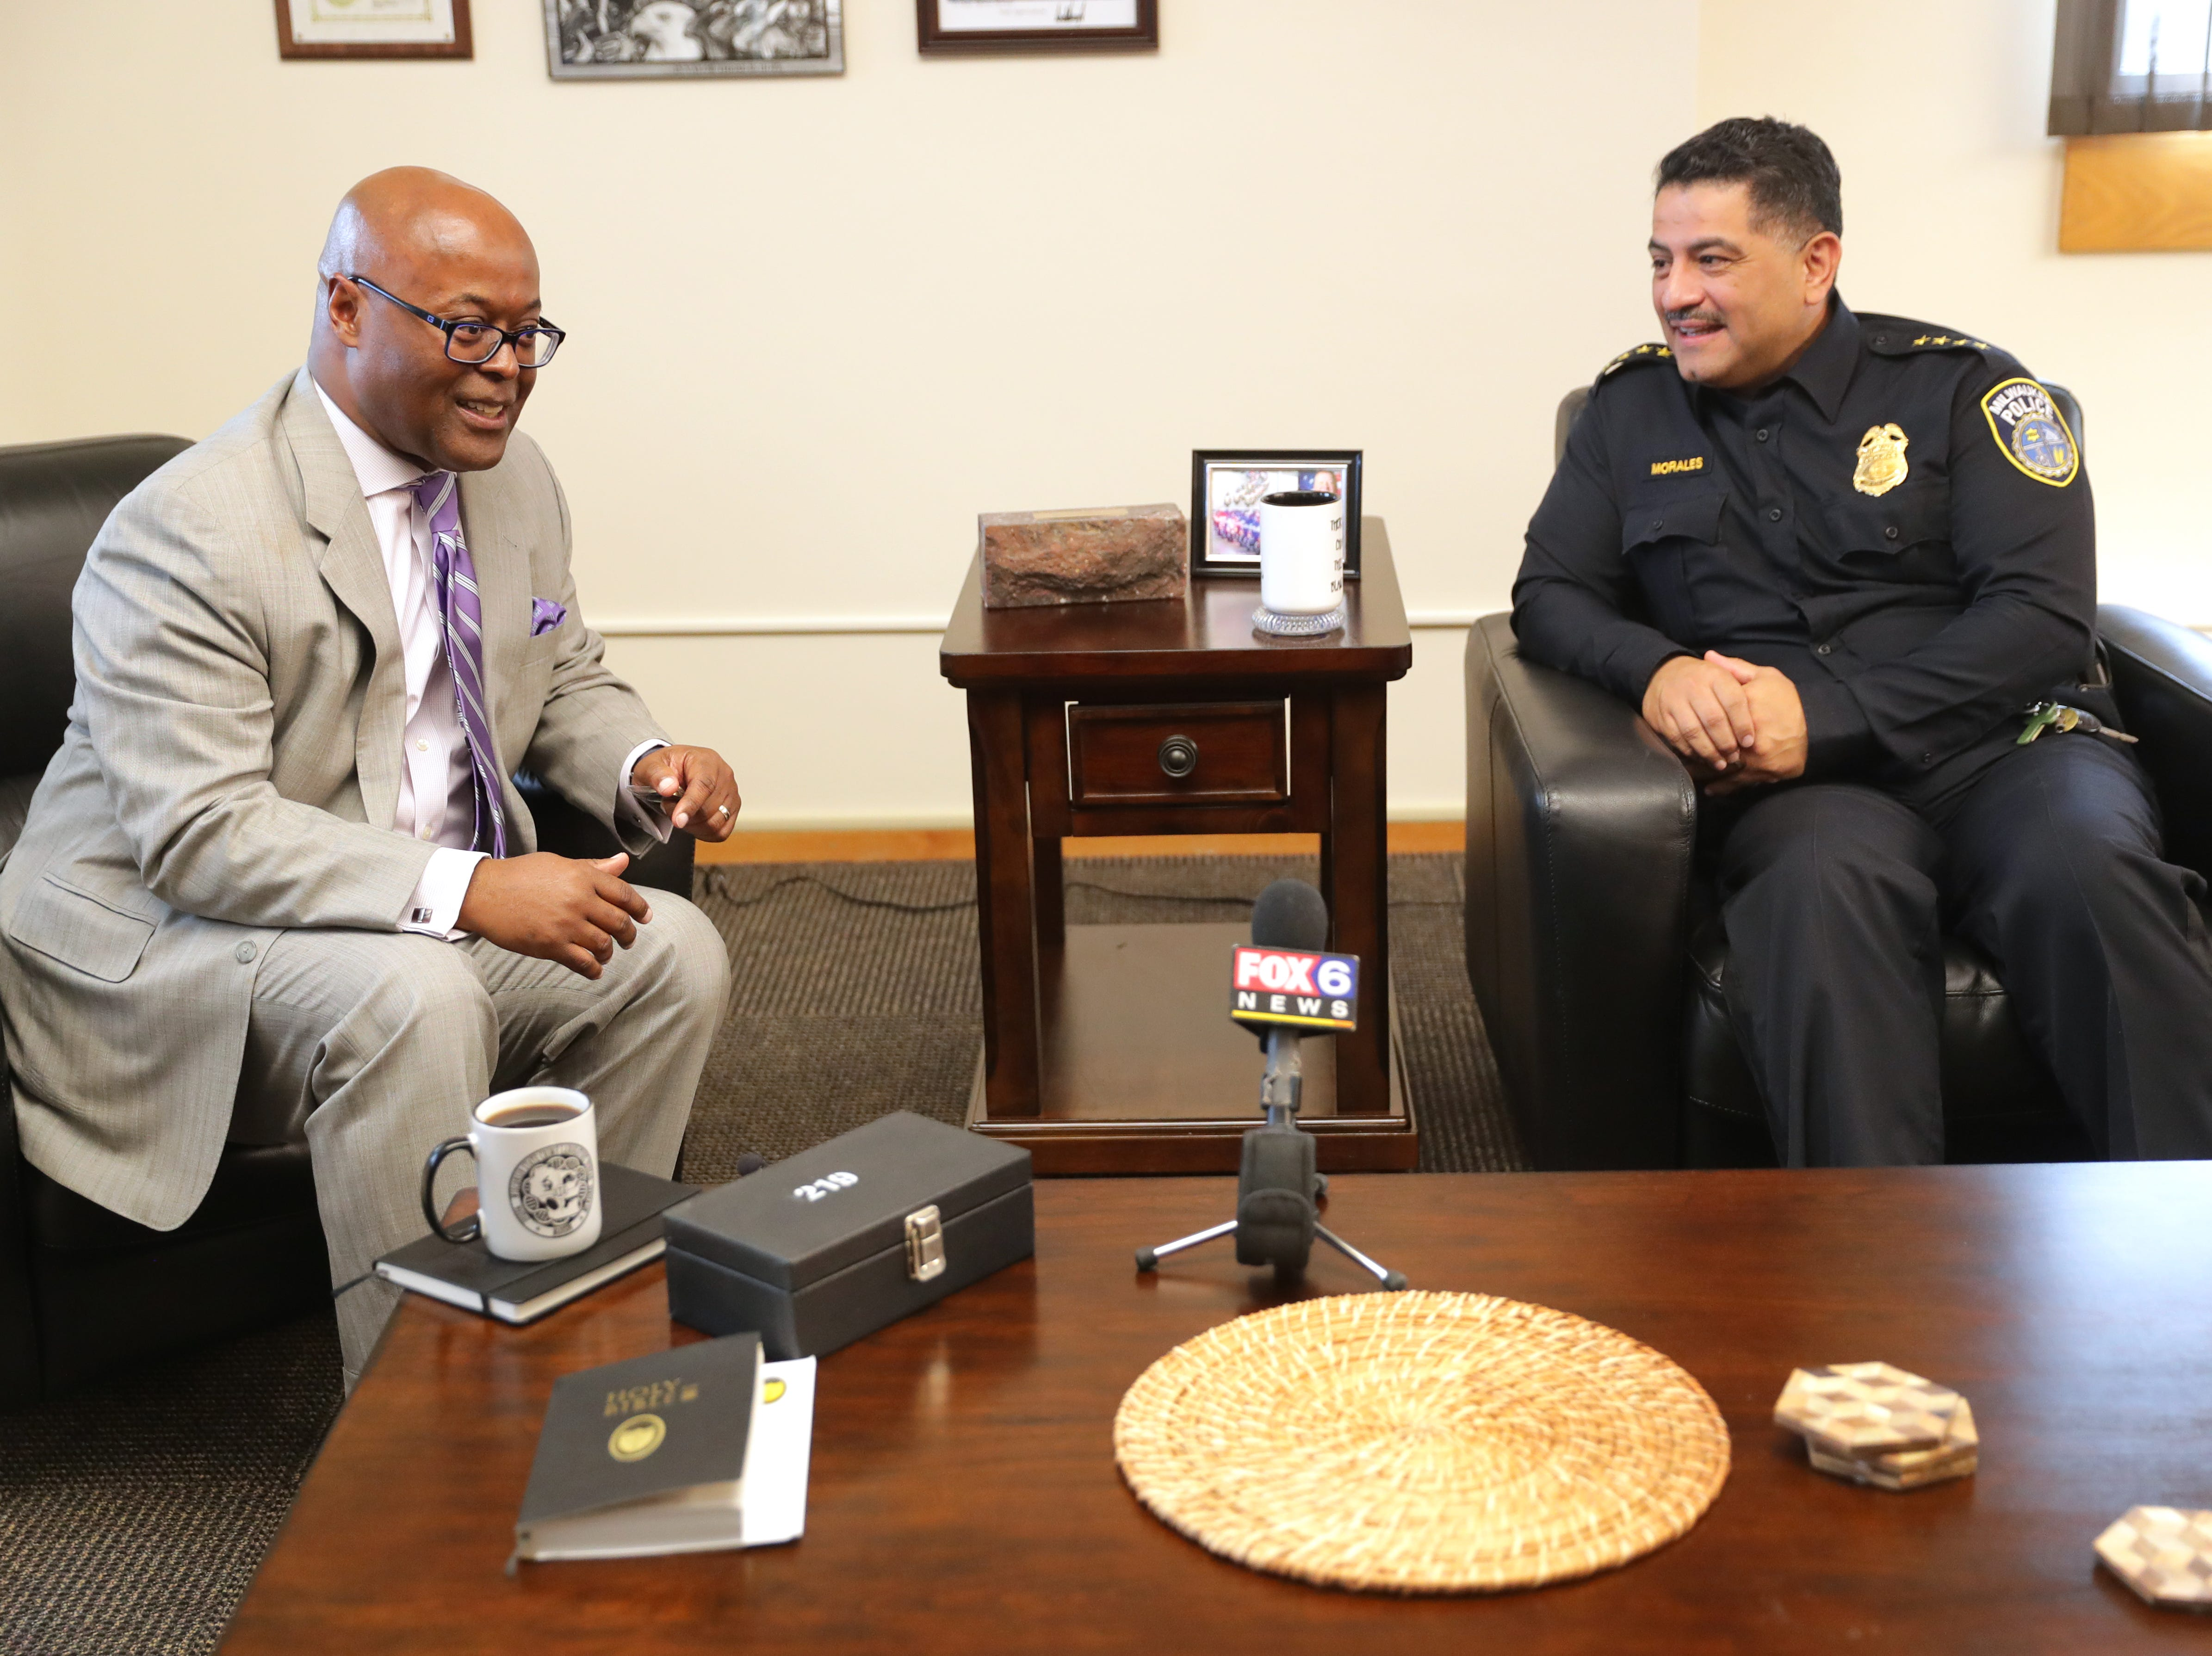 Incoming Milwaukee County Sheriff Earnell Lucas (left) and Milwaukee Police Chief Alfonso Morales meet Wednesday  at the Police Administration Building in Milwaukee. The two are looking to smooth the relationship between the two forces after the turbulent one with former Milwaukee County Sheriff David A. Clarke Jr. and Milwaukee Police Chief Ed Flynn.